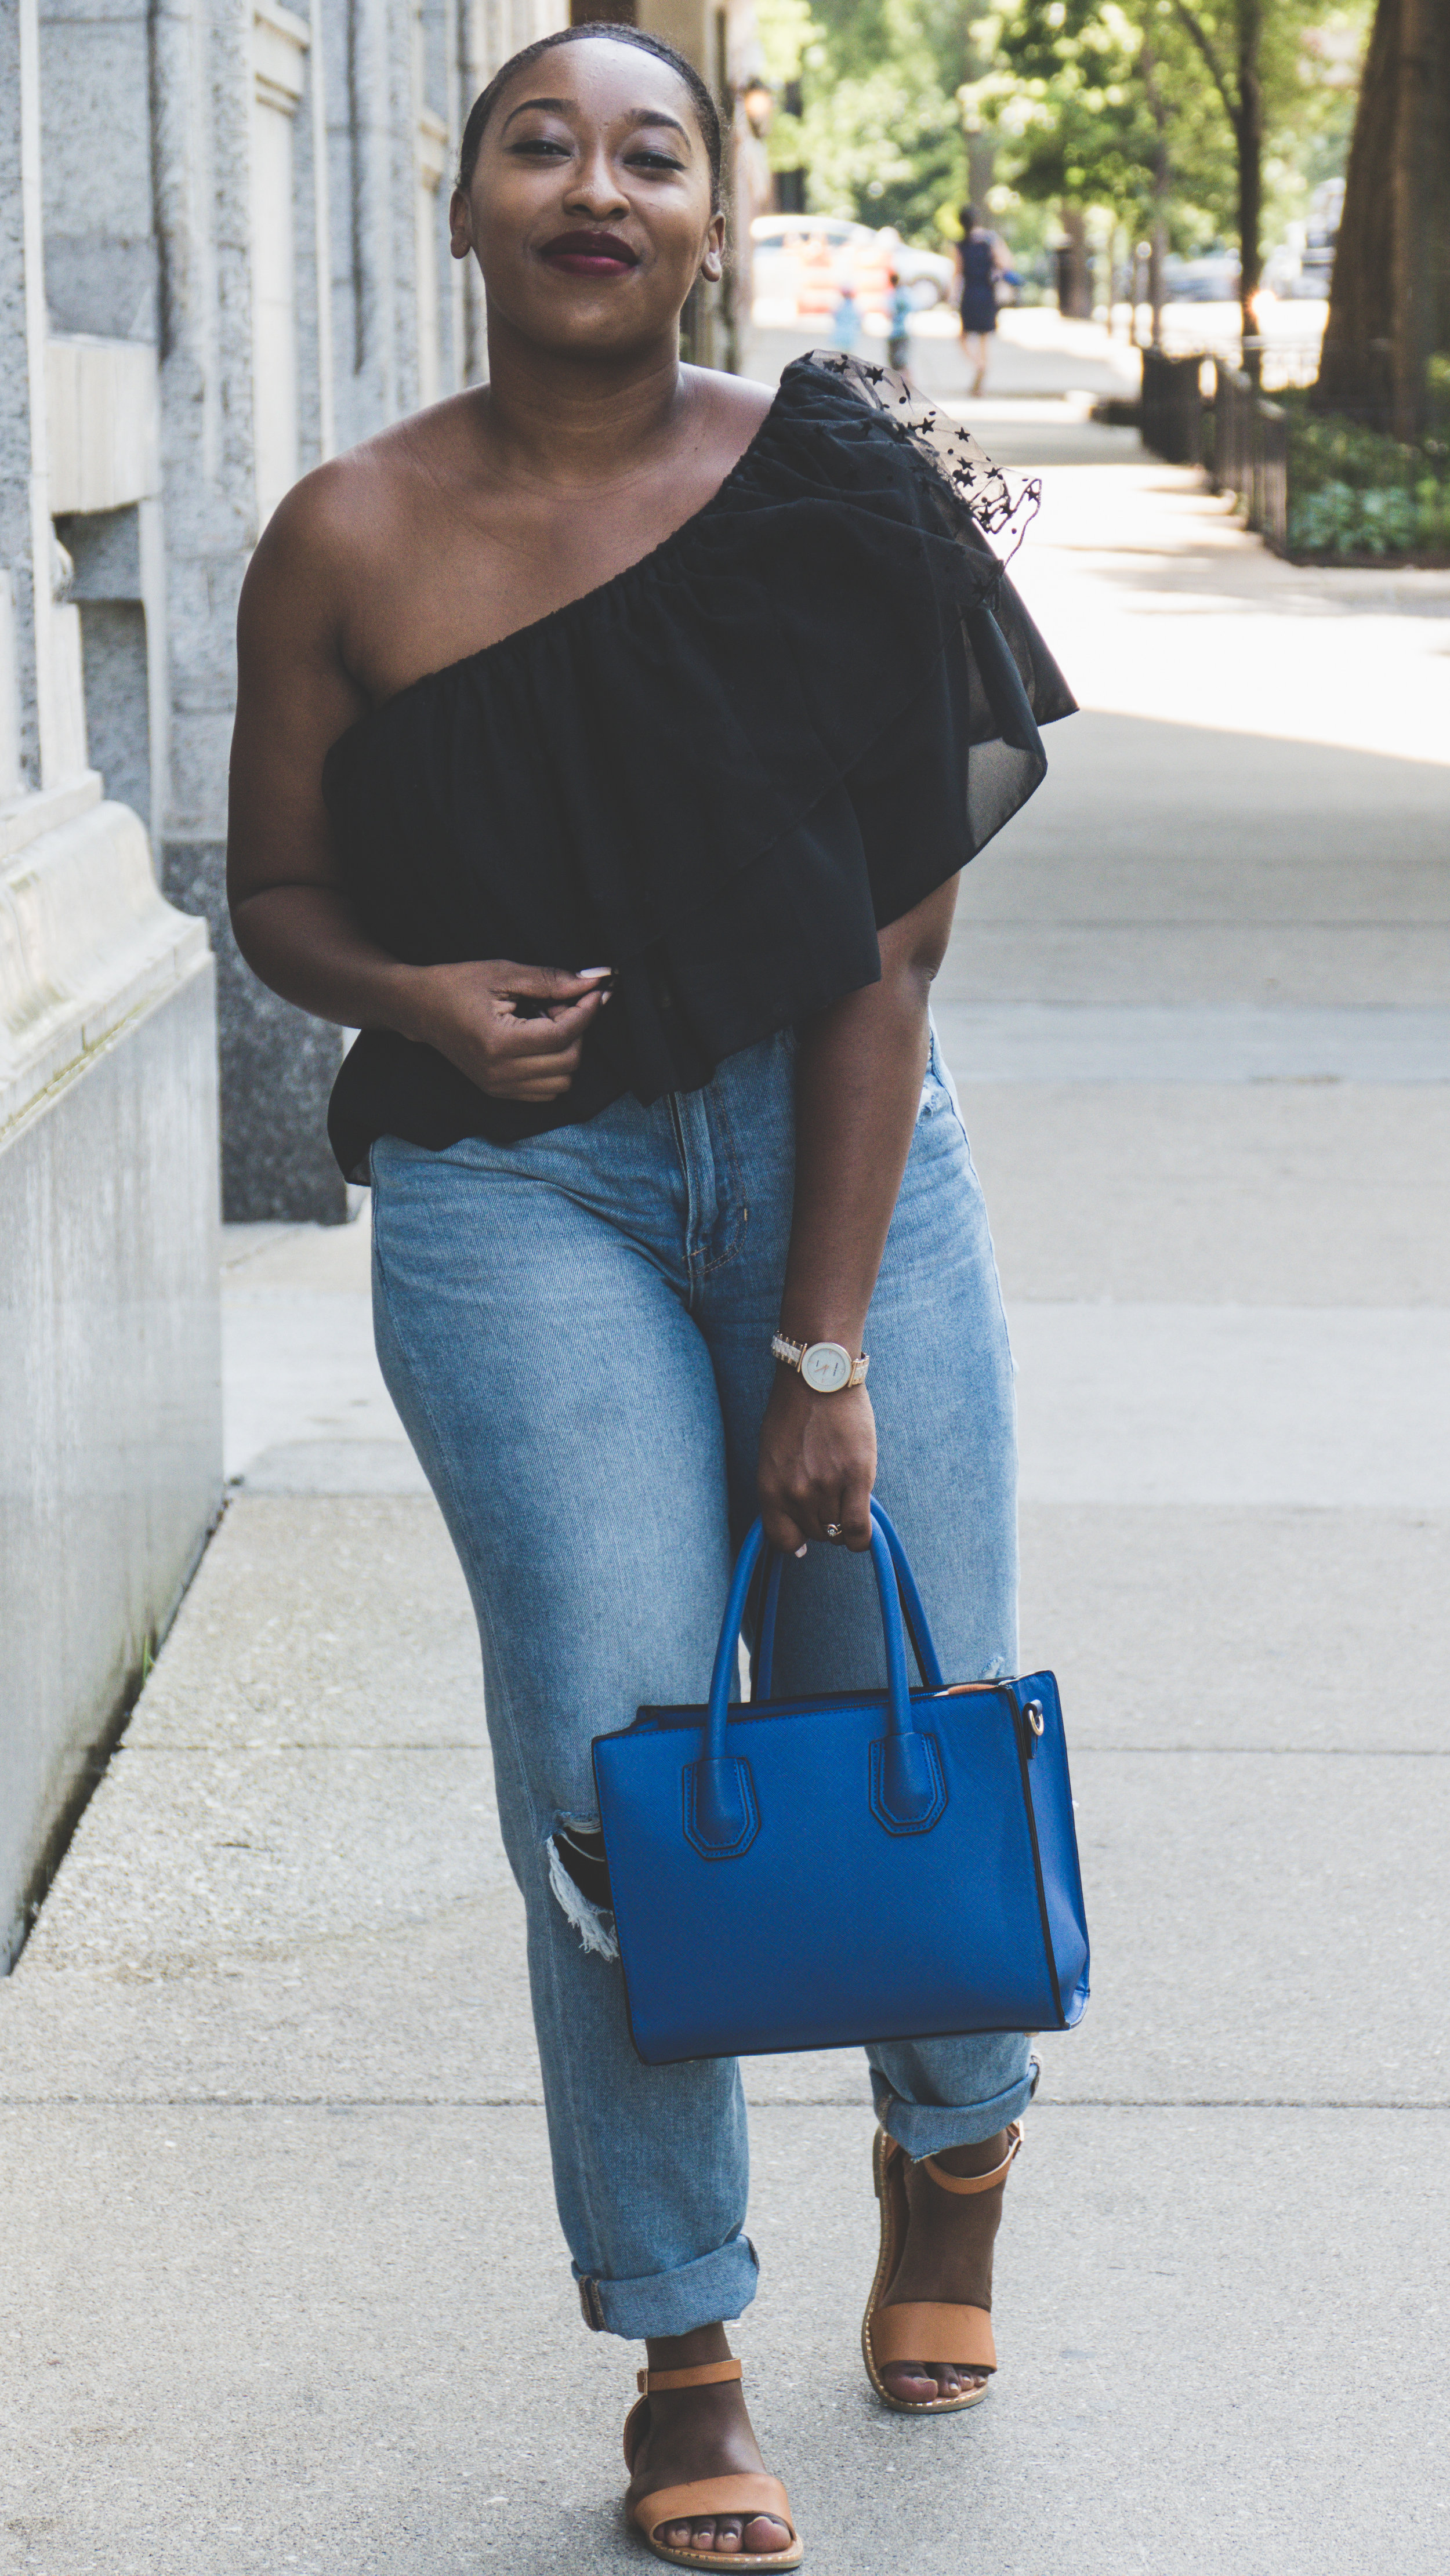 Off the shoulder top, how to style a how the shoulder top, what should I wear, american eagle jeans,autumlove